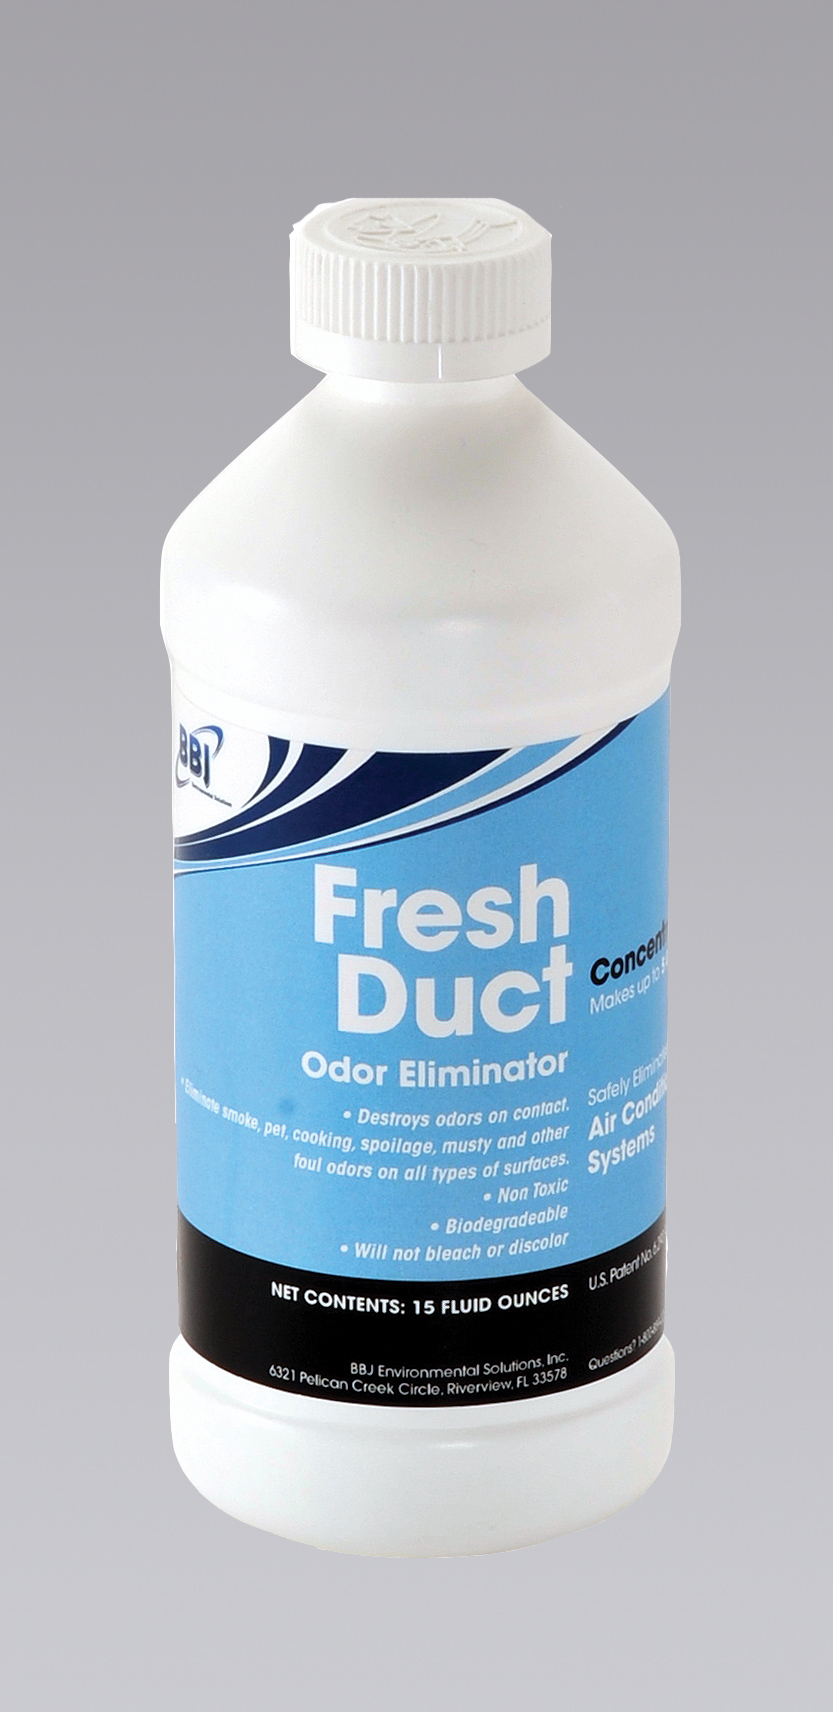 861817 - BBJ FRESHDUCT ODOR ELIMINATOR - NIKRO Industries, Inc.